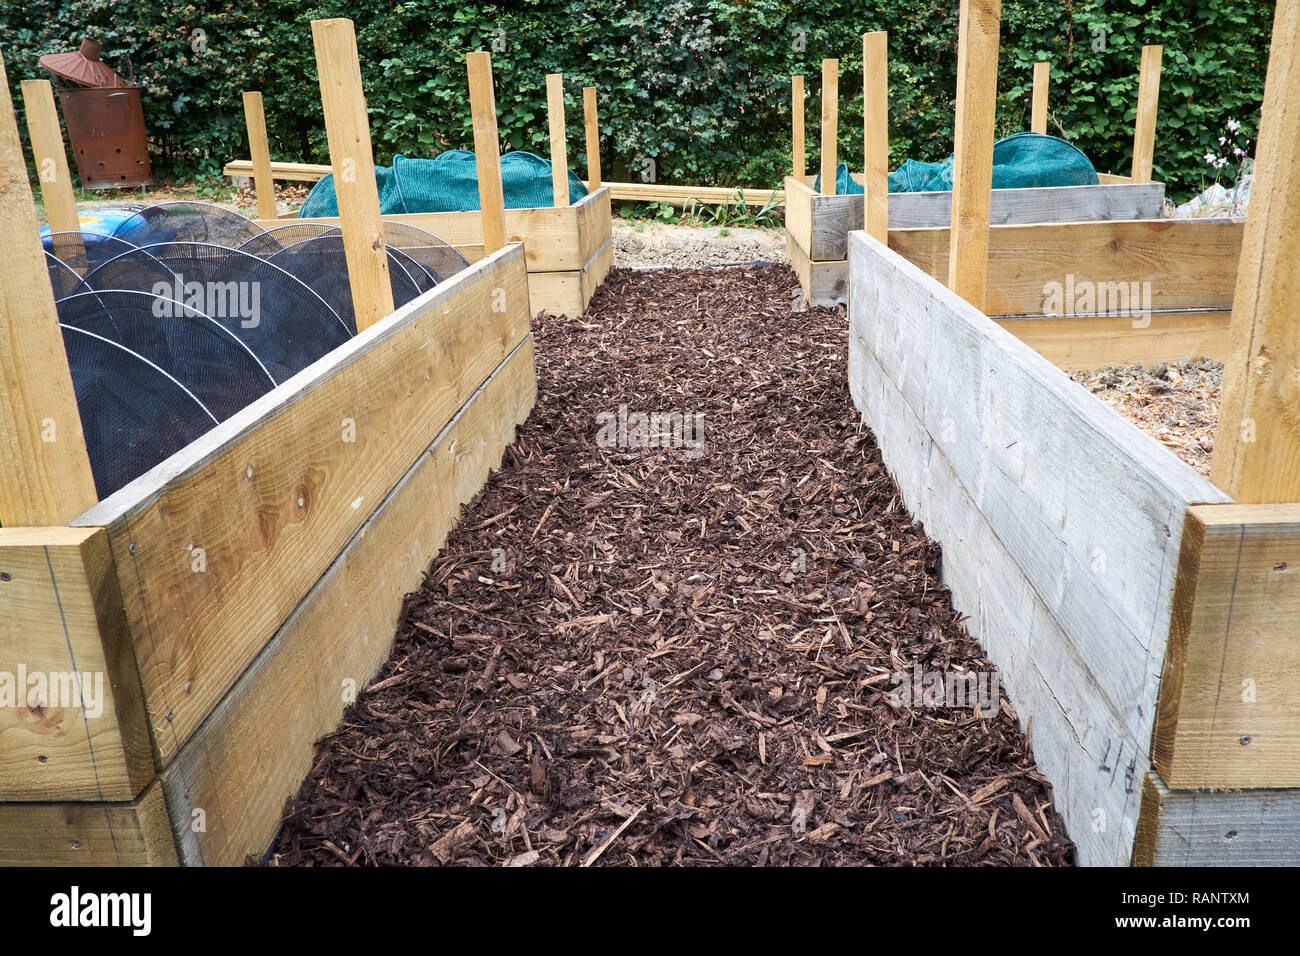 Timber Raised Bed Construction In A Vegetable Garden Uk Stock Photo Alamy